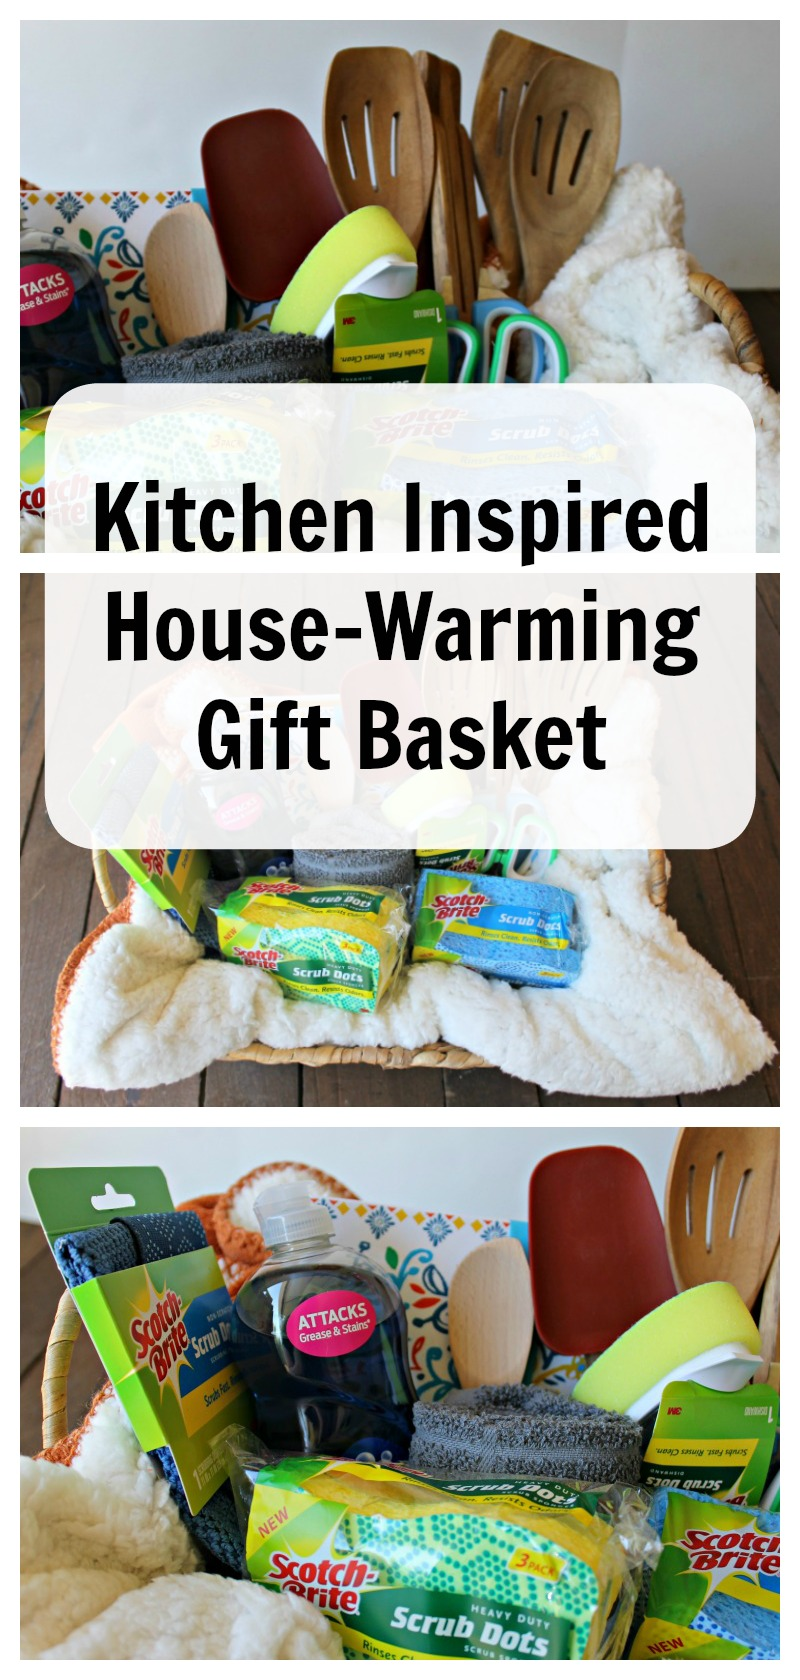 Kitchen Inspired House-Warming Gift Basket Ideas  Finding Sanity